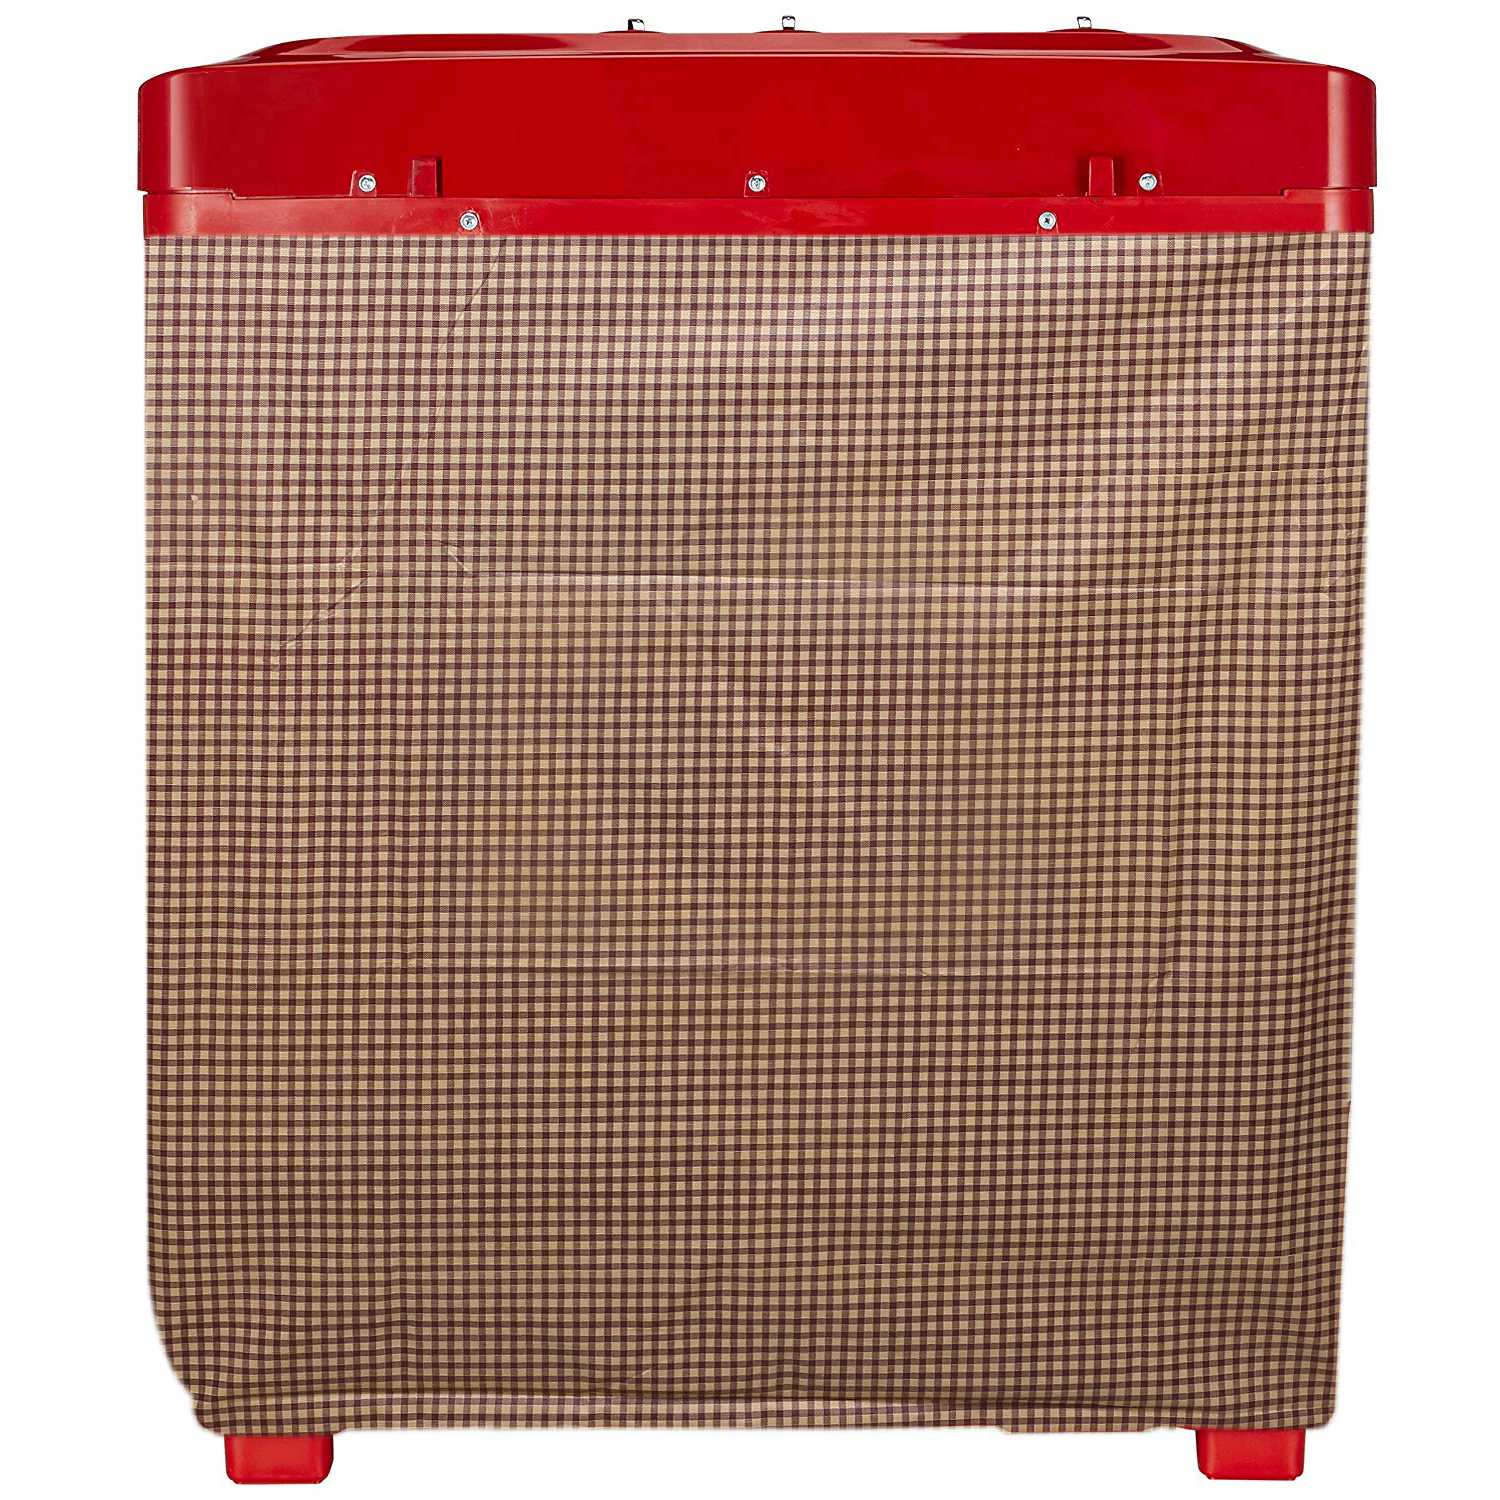 Kuber Industries Checkered Design PVC Top Load Semi Automatic Washing Machine Cover (Brown)-CTKTC14412